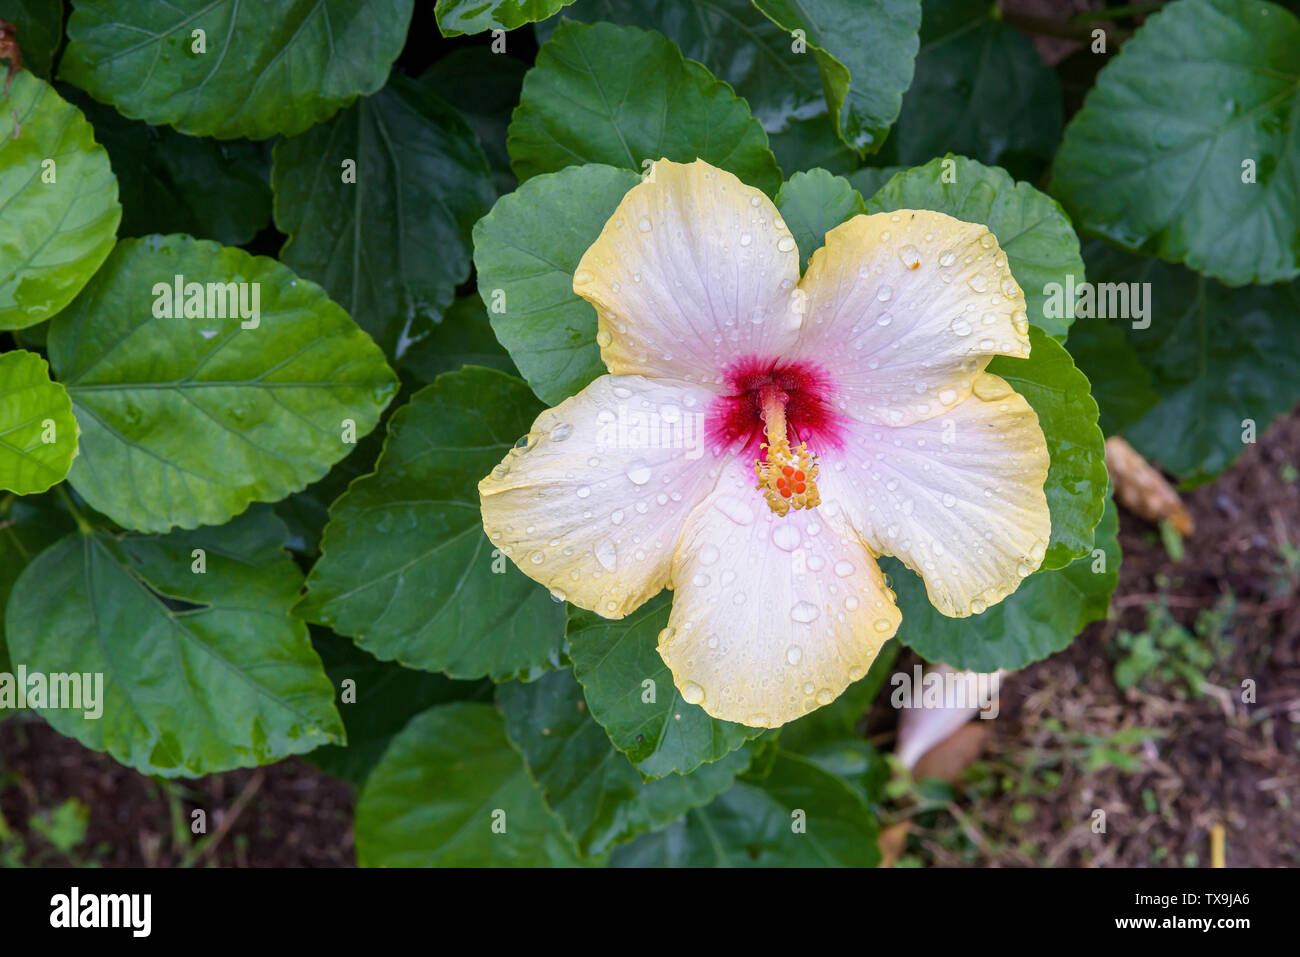 Wet hibiscus flower among green leaves as floral natural background Stock Photo